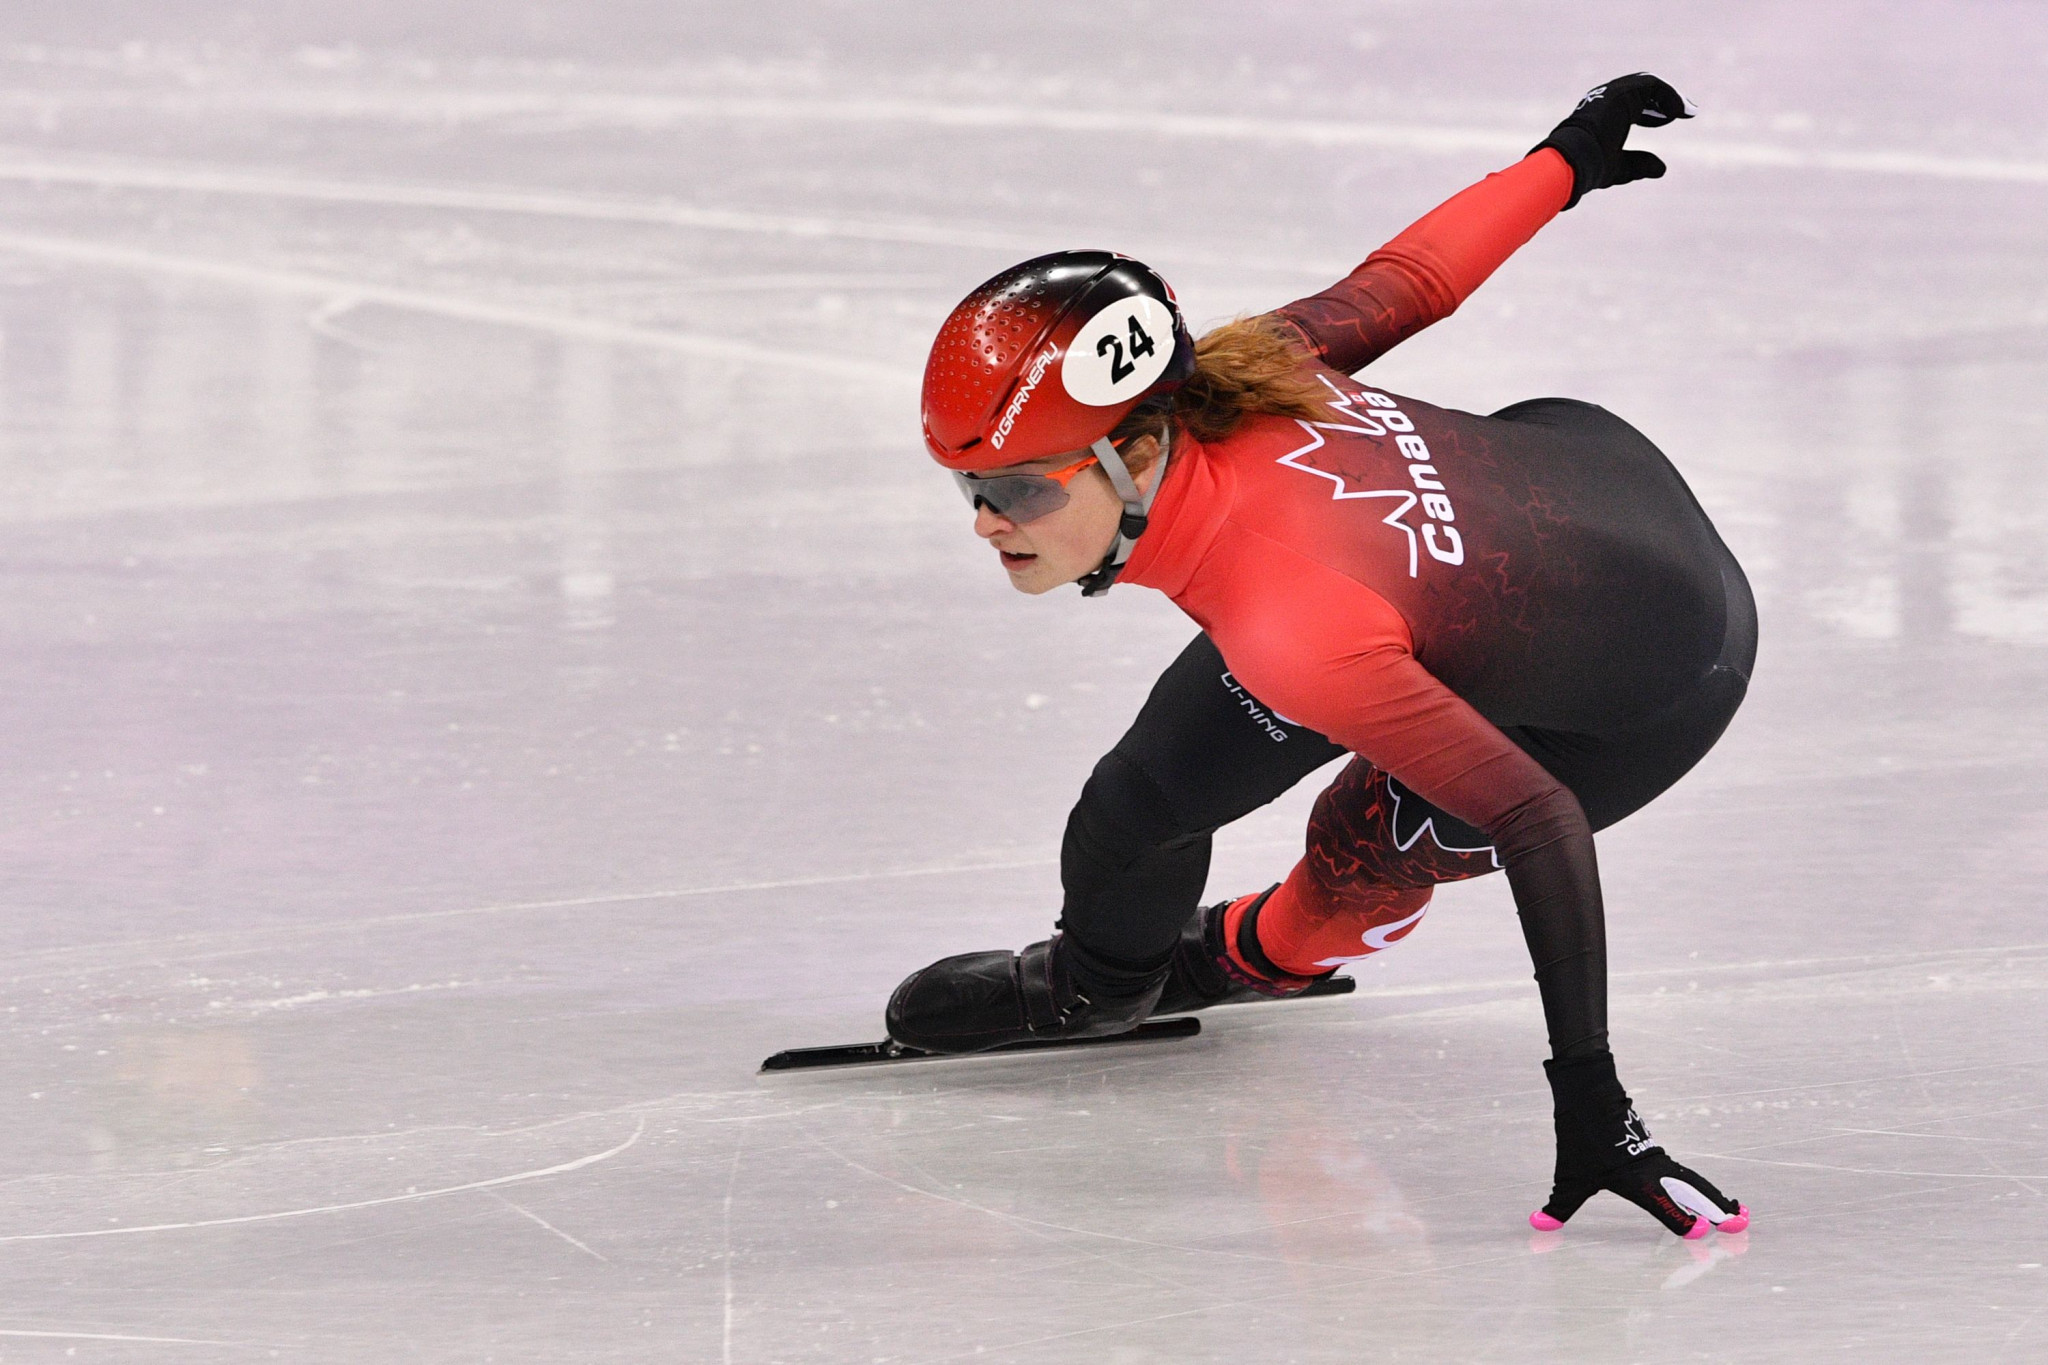 Boutin maintains winning streak at ISU Short Track World Cup in Dresden